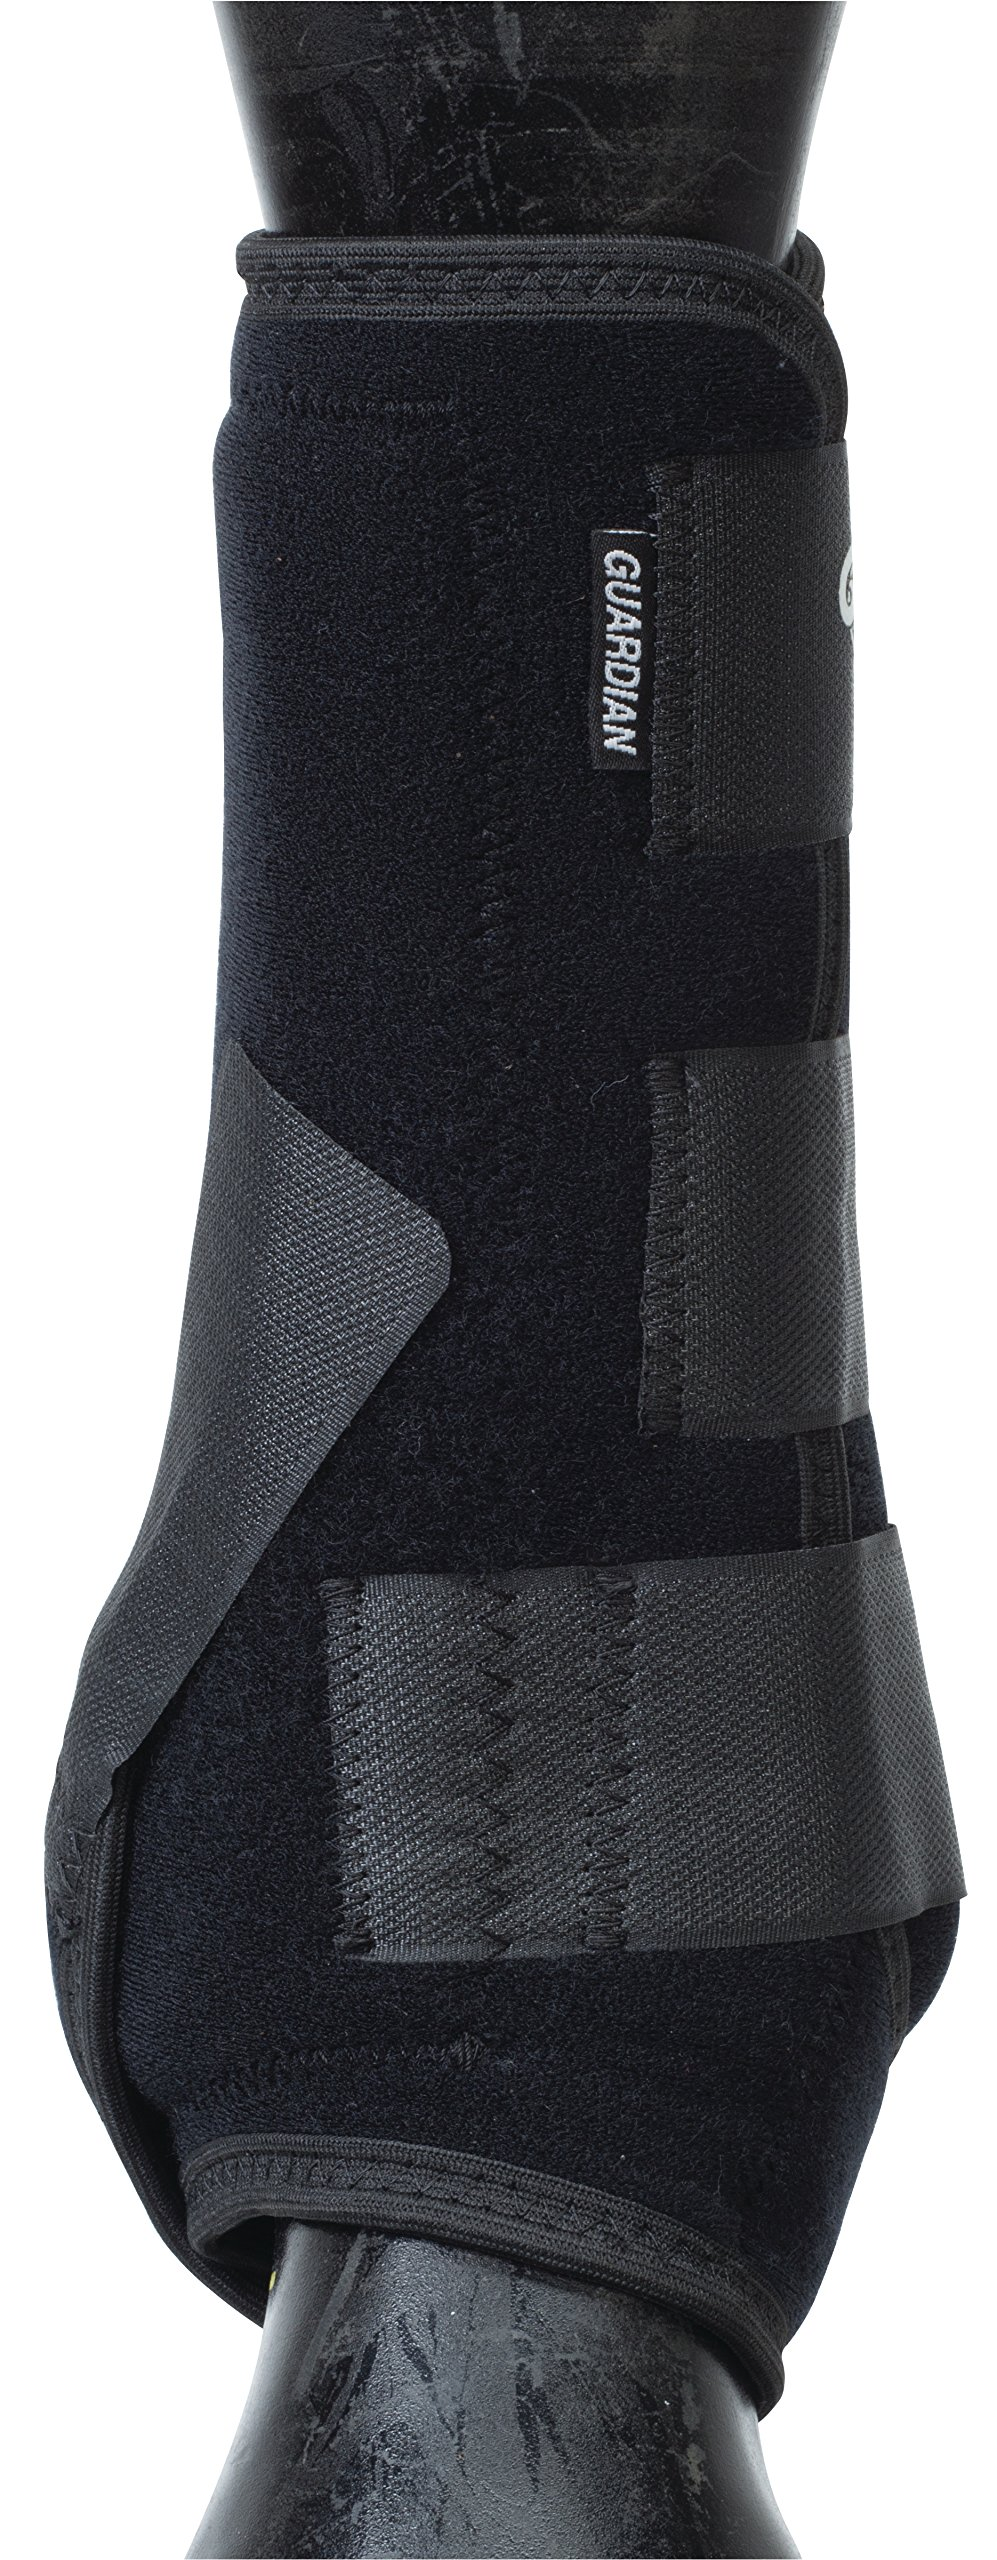 Weaver Leather Prodigy Guardian Athletic Boots